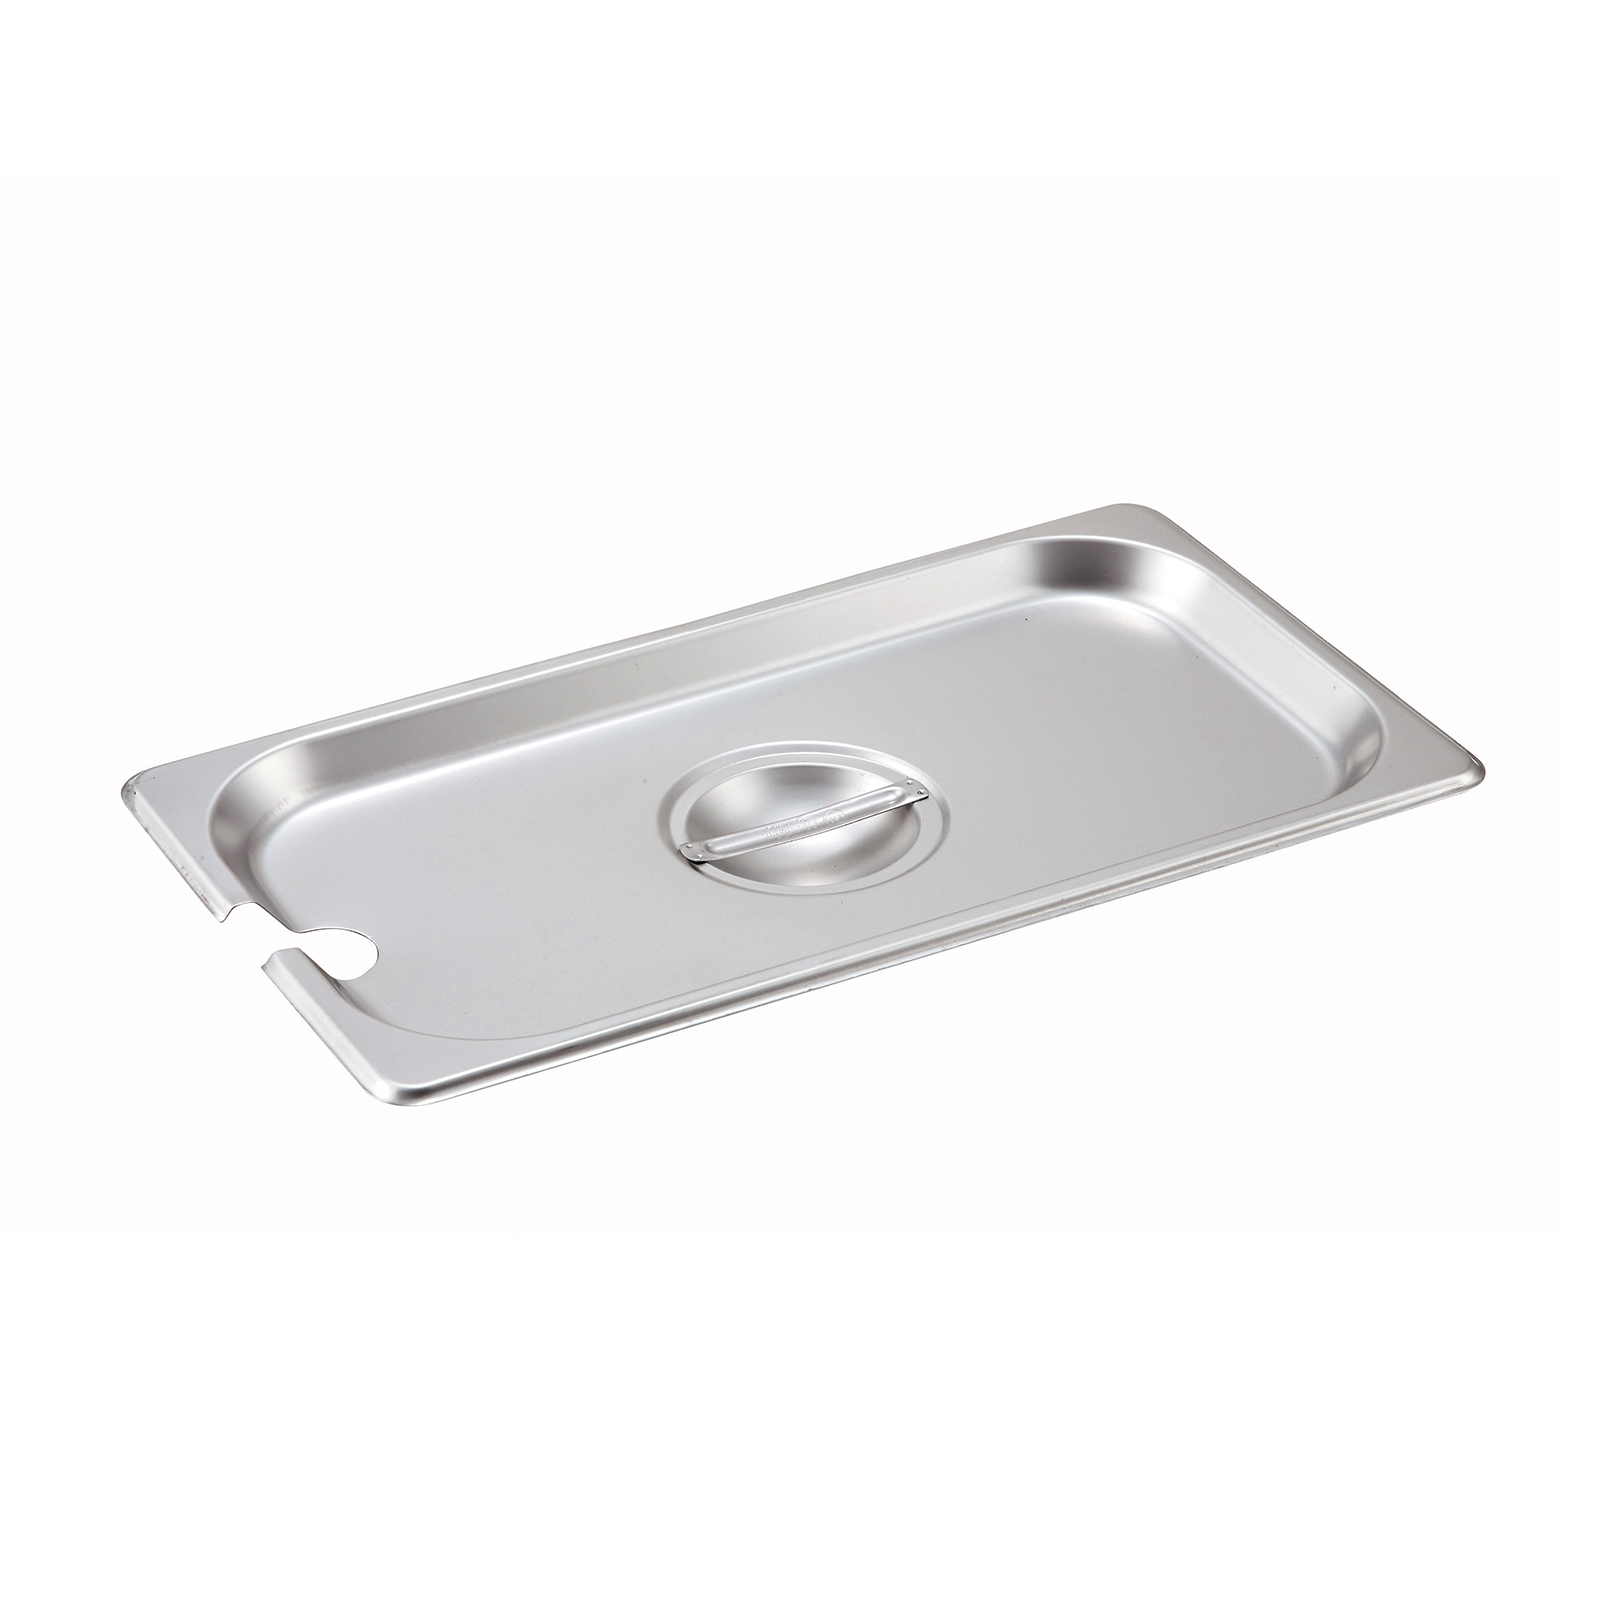 2400-126 Winco SPCT steam table pan cover, stainless steel